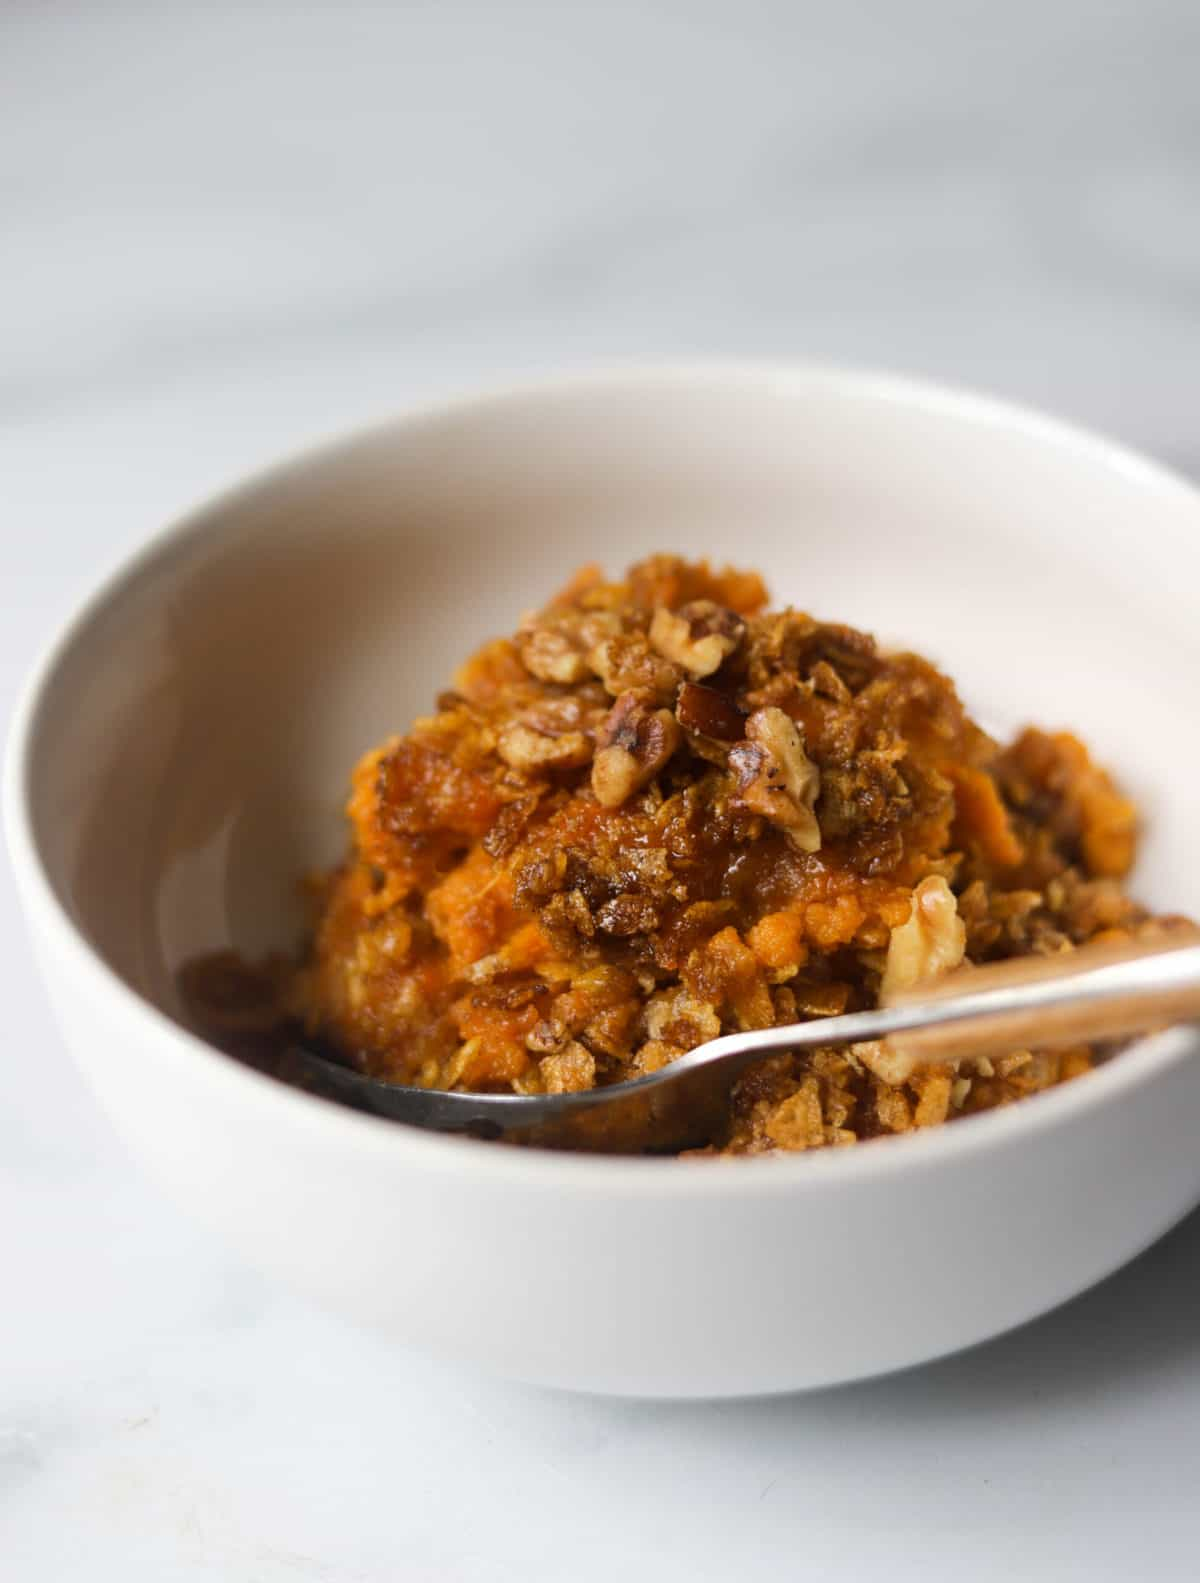 A side shot of a scoop of sweet potato casserole in a white bowl.